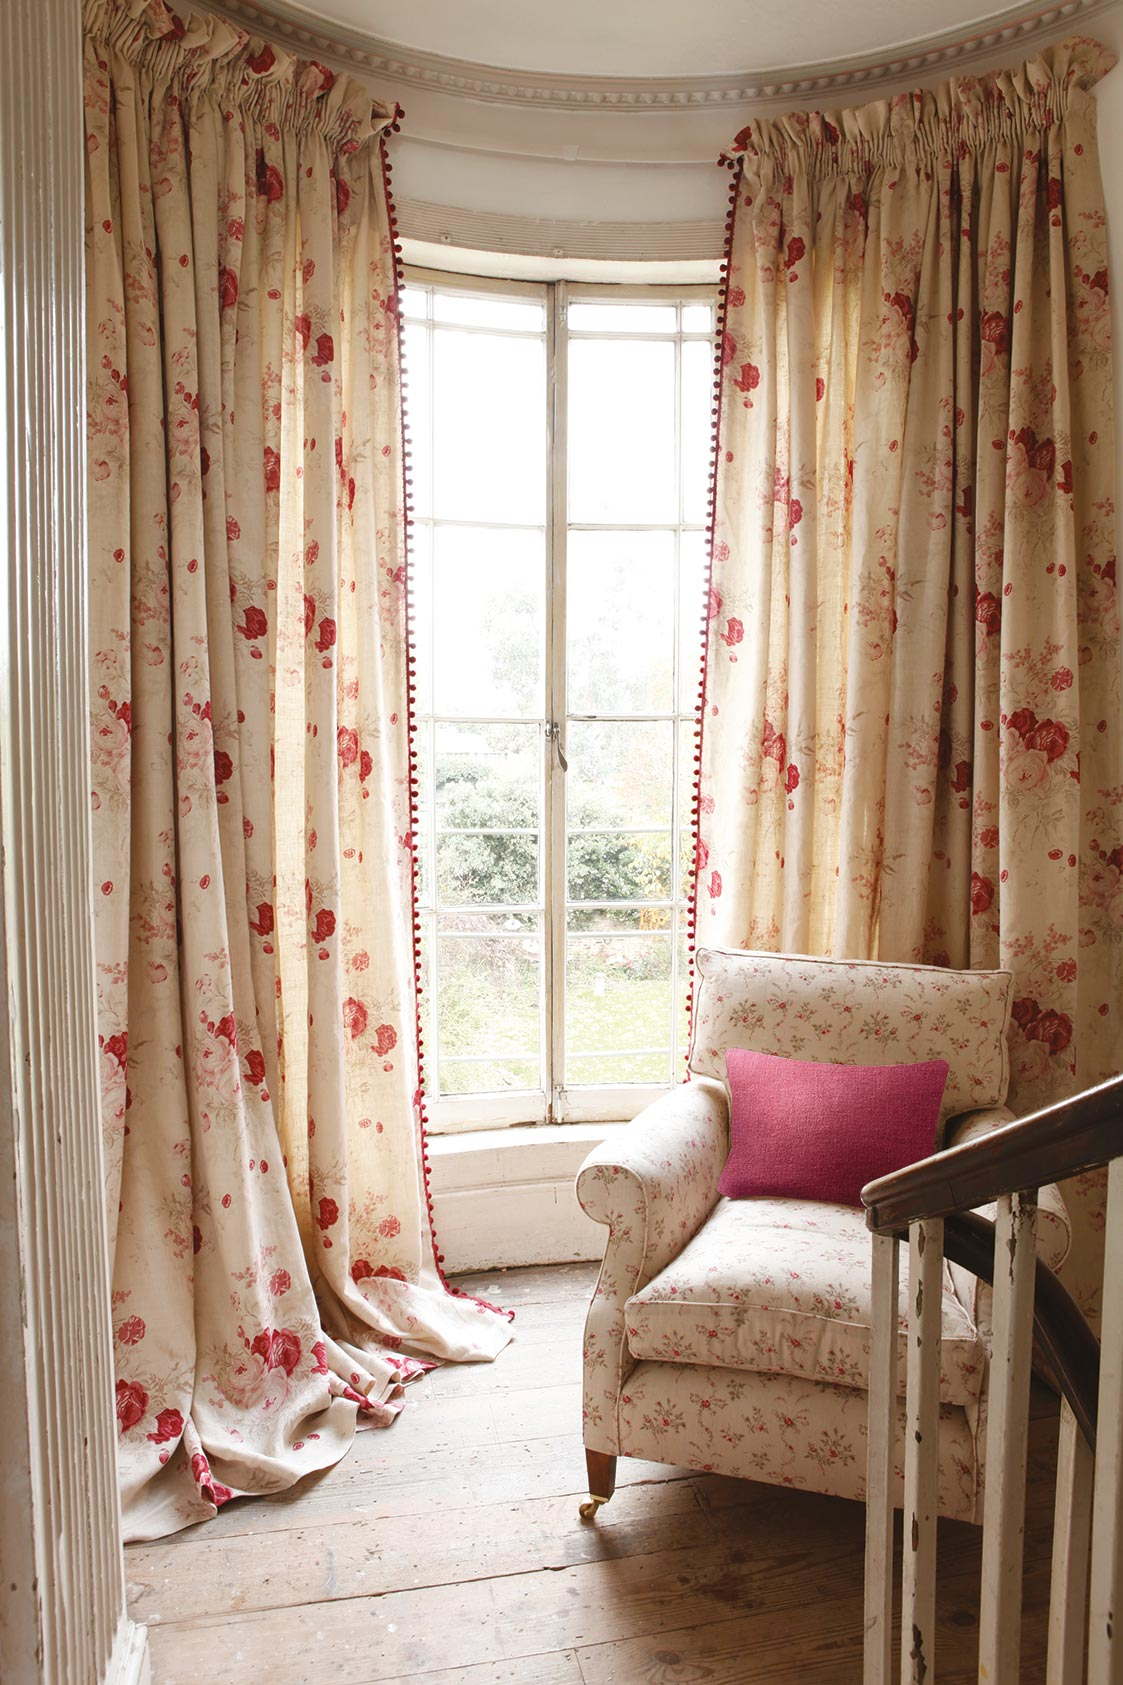 Roses Curtains and Sprig Chair